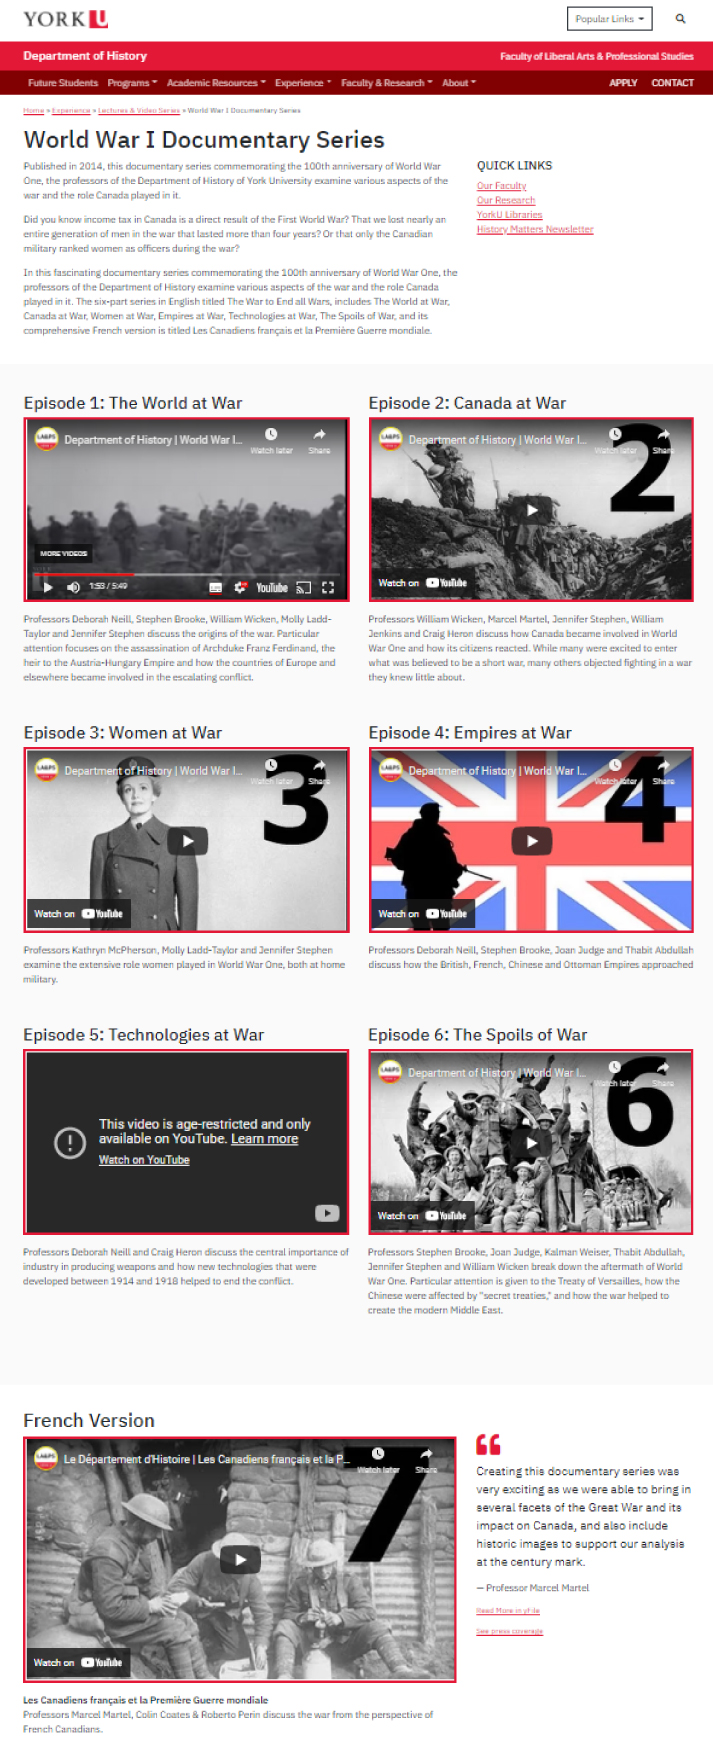 https://www.yorku.ca/laps/hist/experience/lectures-video-series/world-war-i-documentary-series/